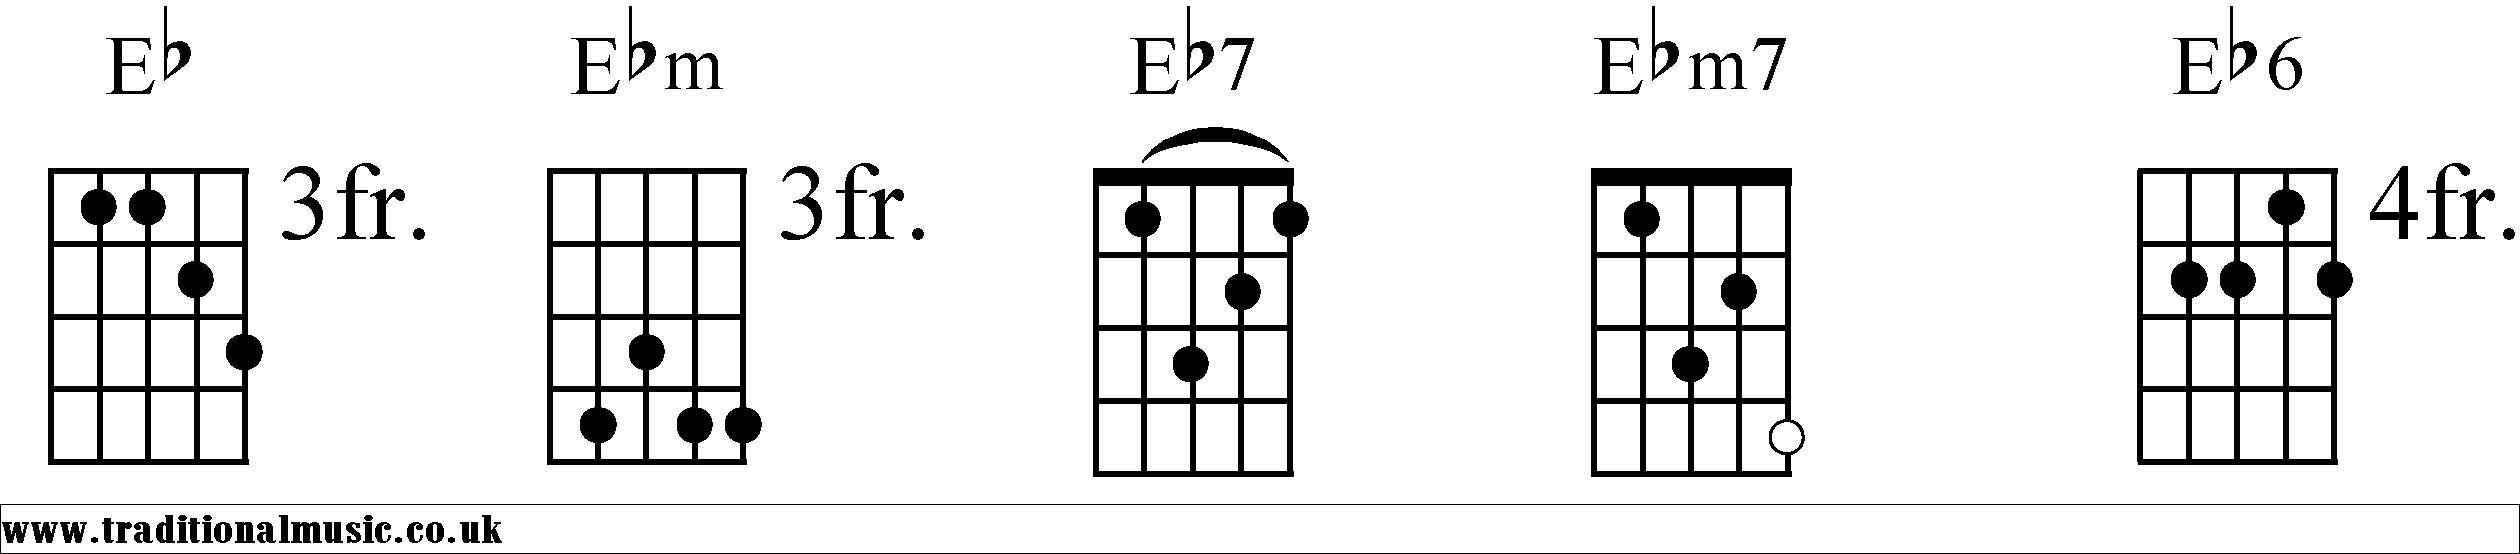 Chord charts for 5 string banjo Eb chords